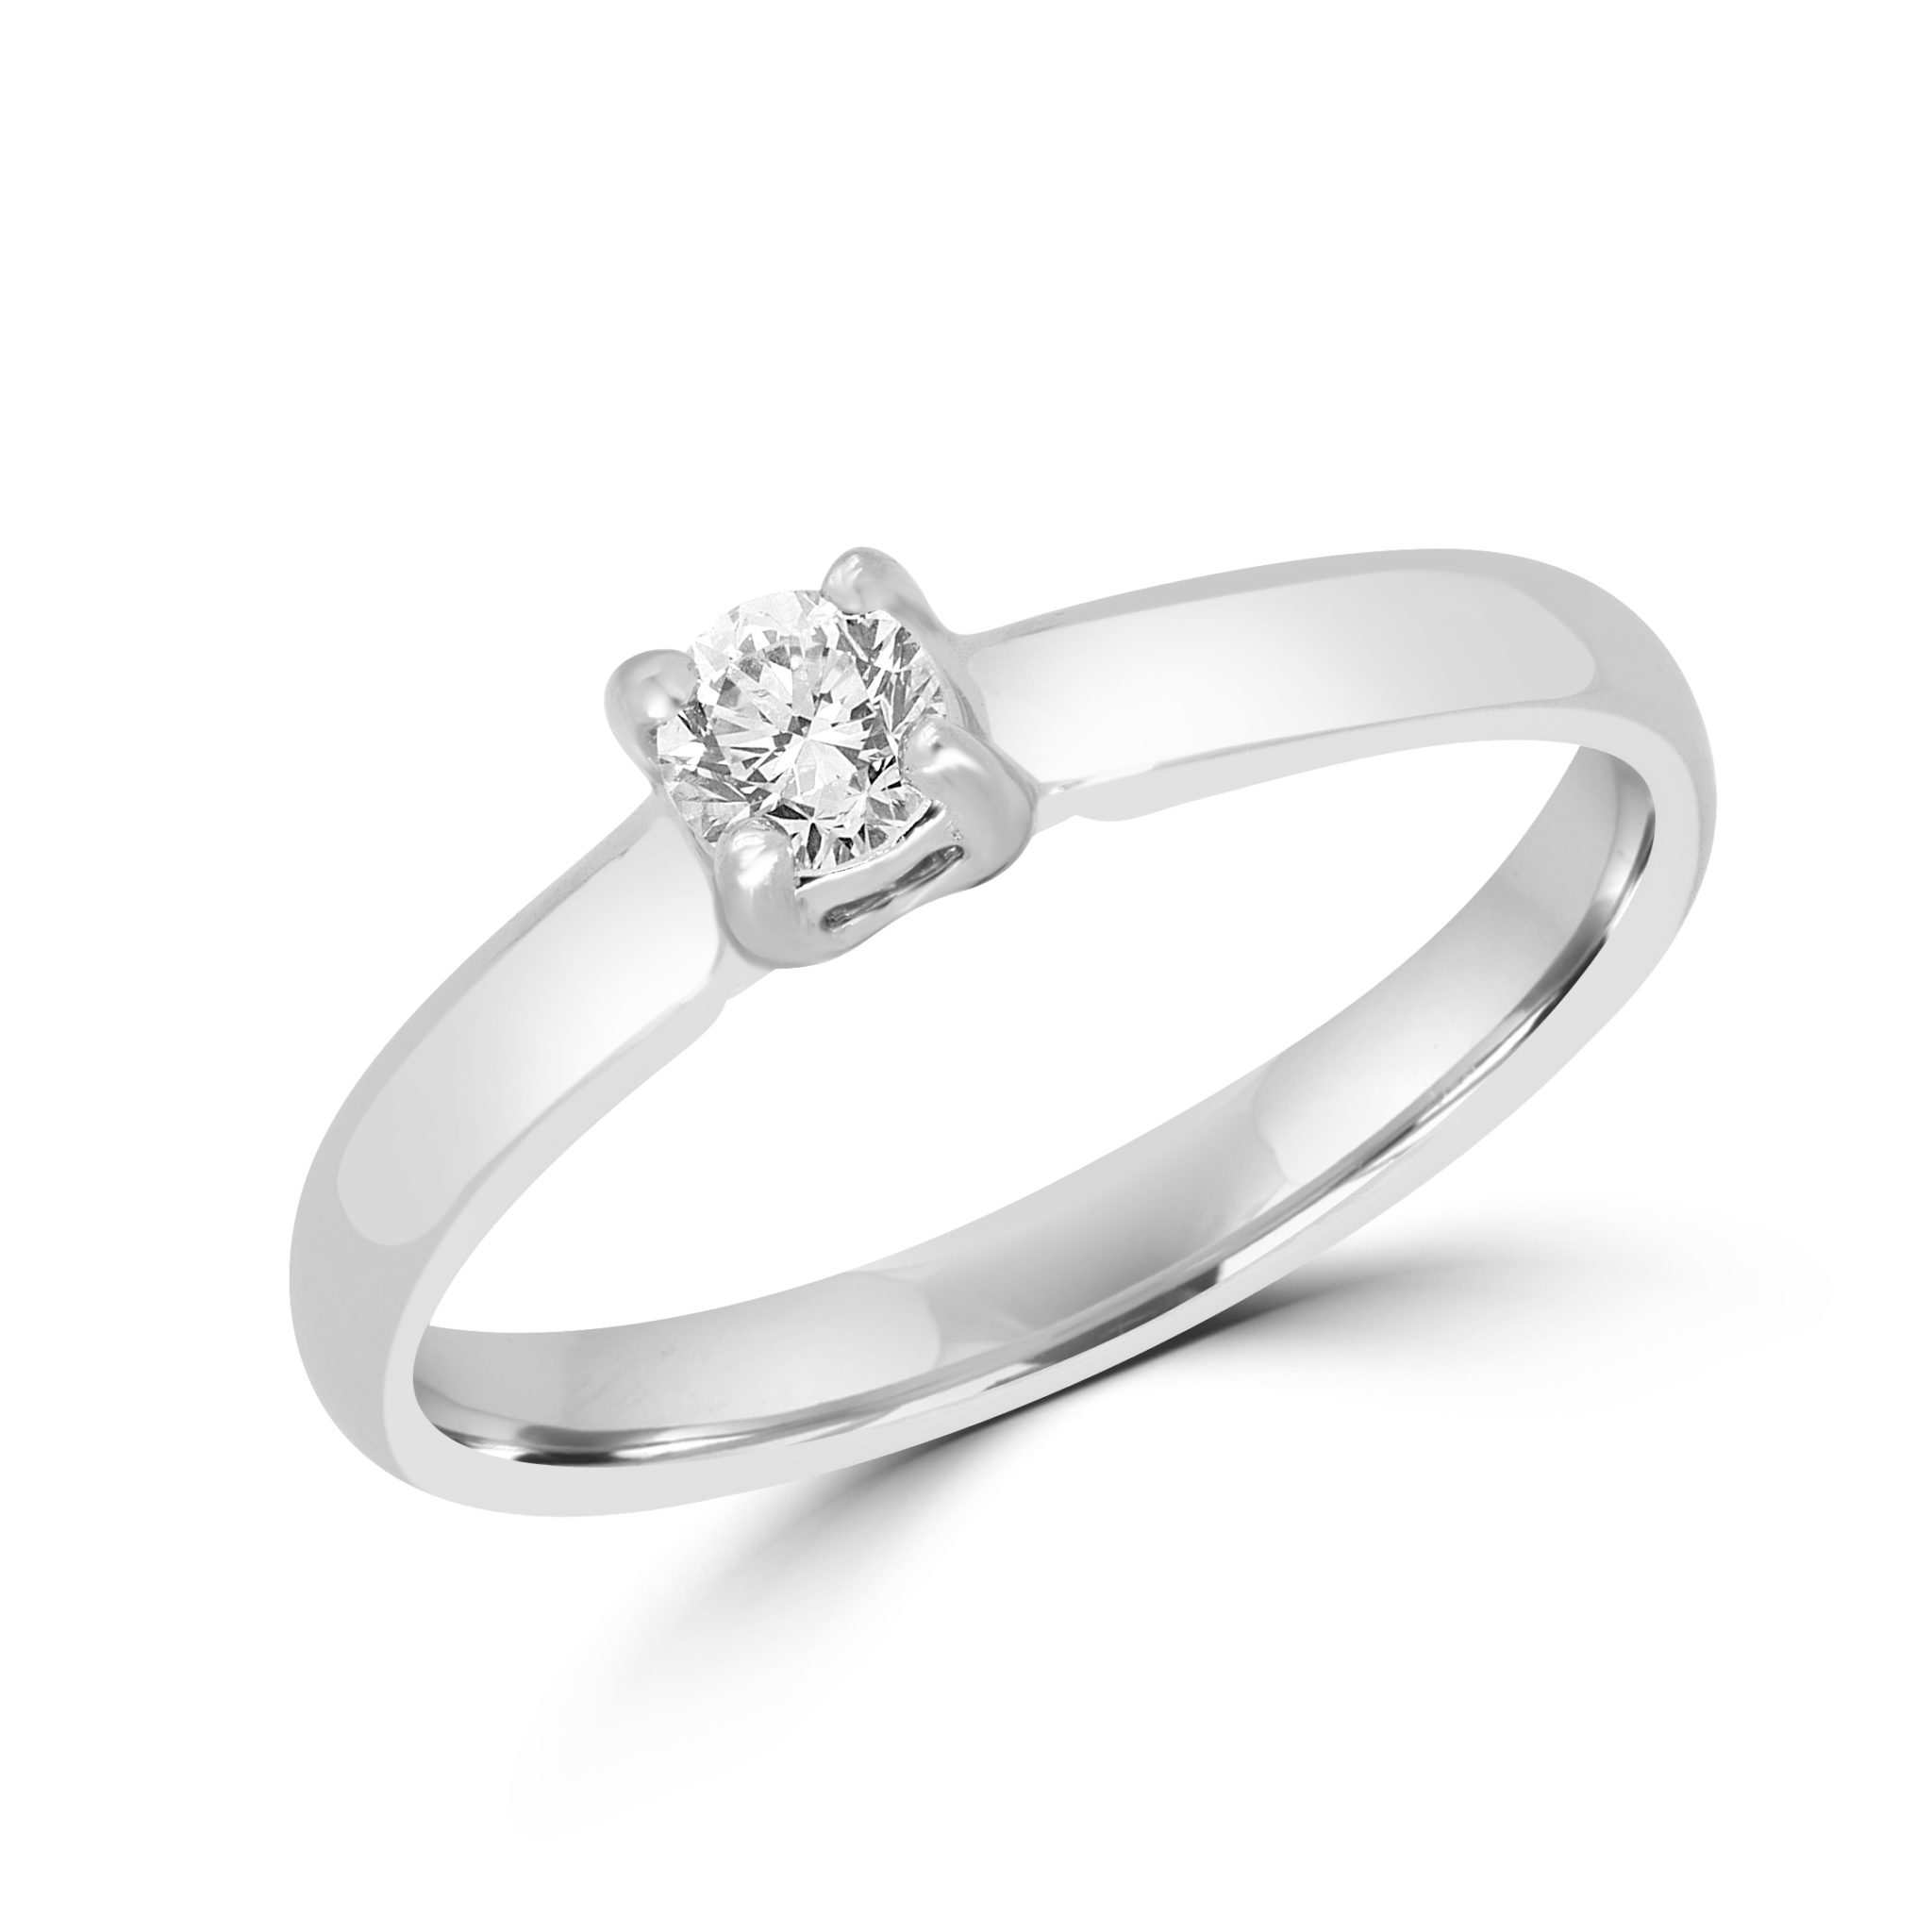 Elegant solitary engagement ring 0.20 (ctw) in 14k white gold